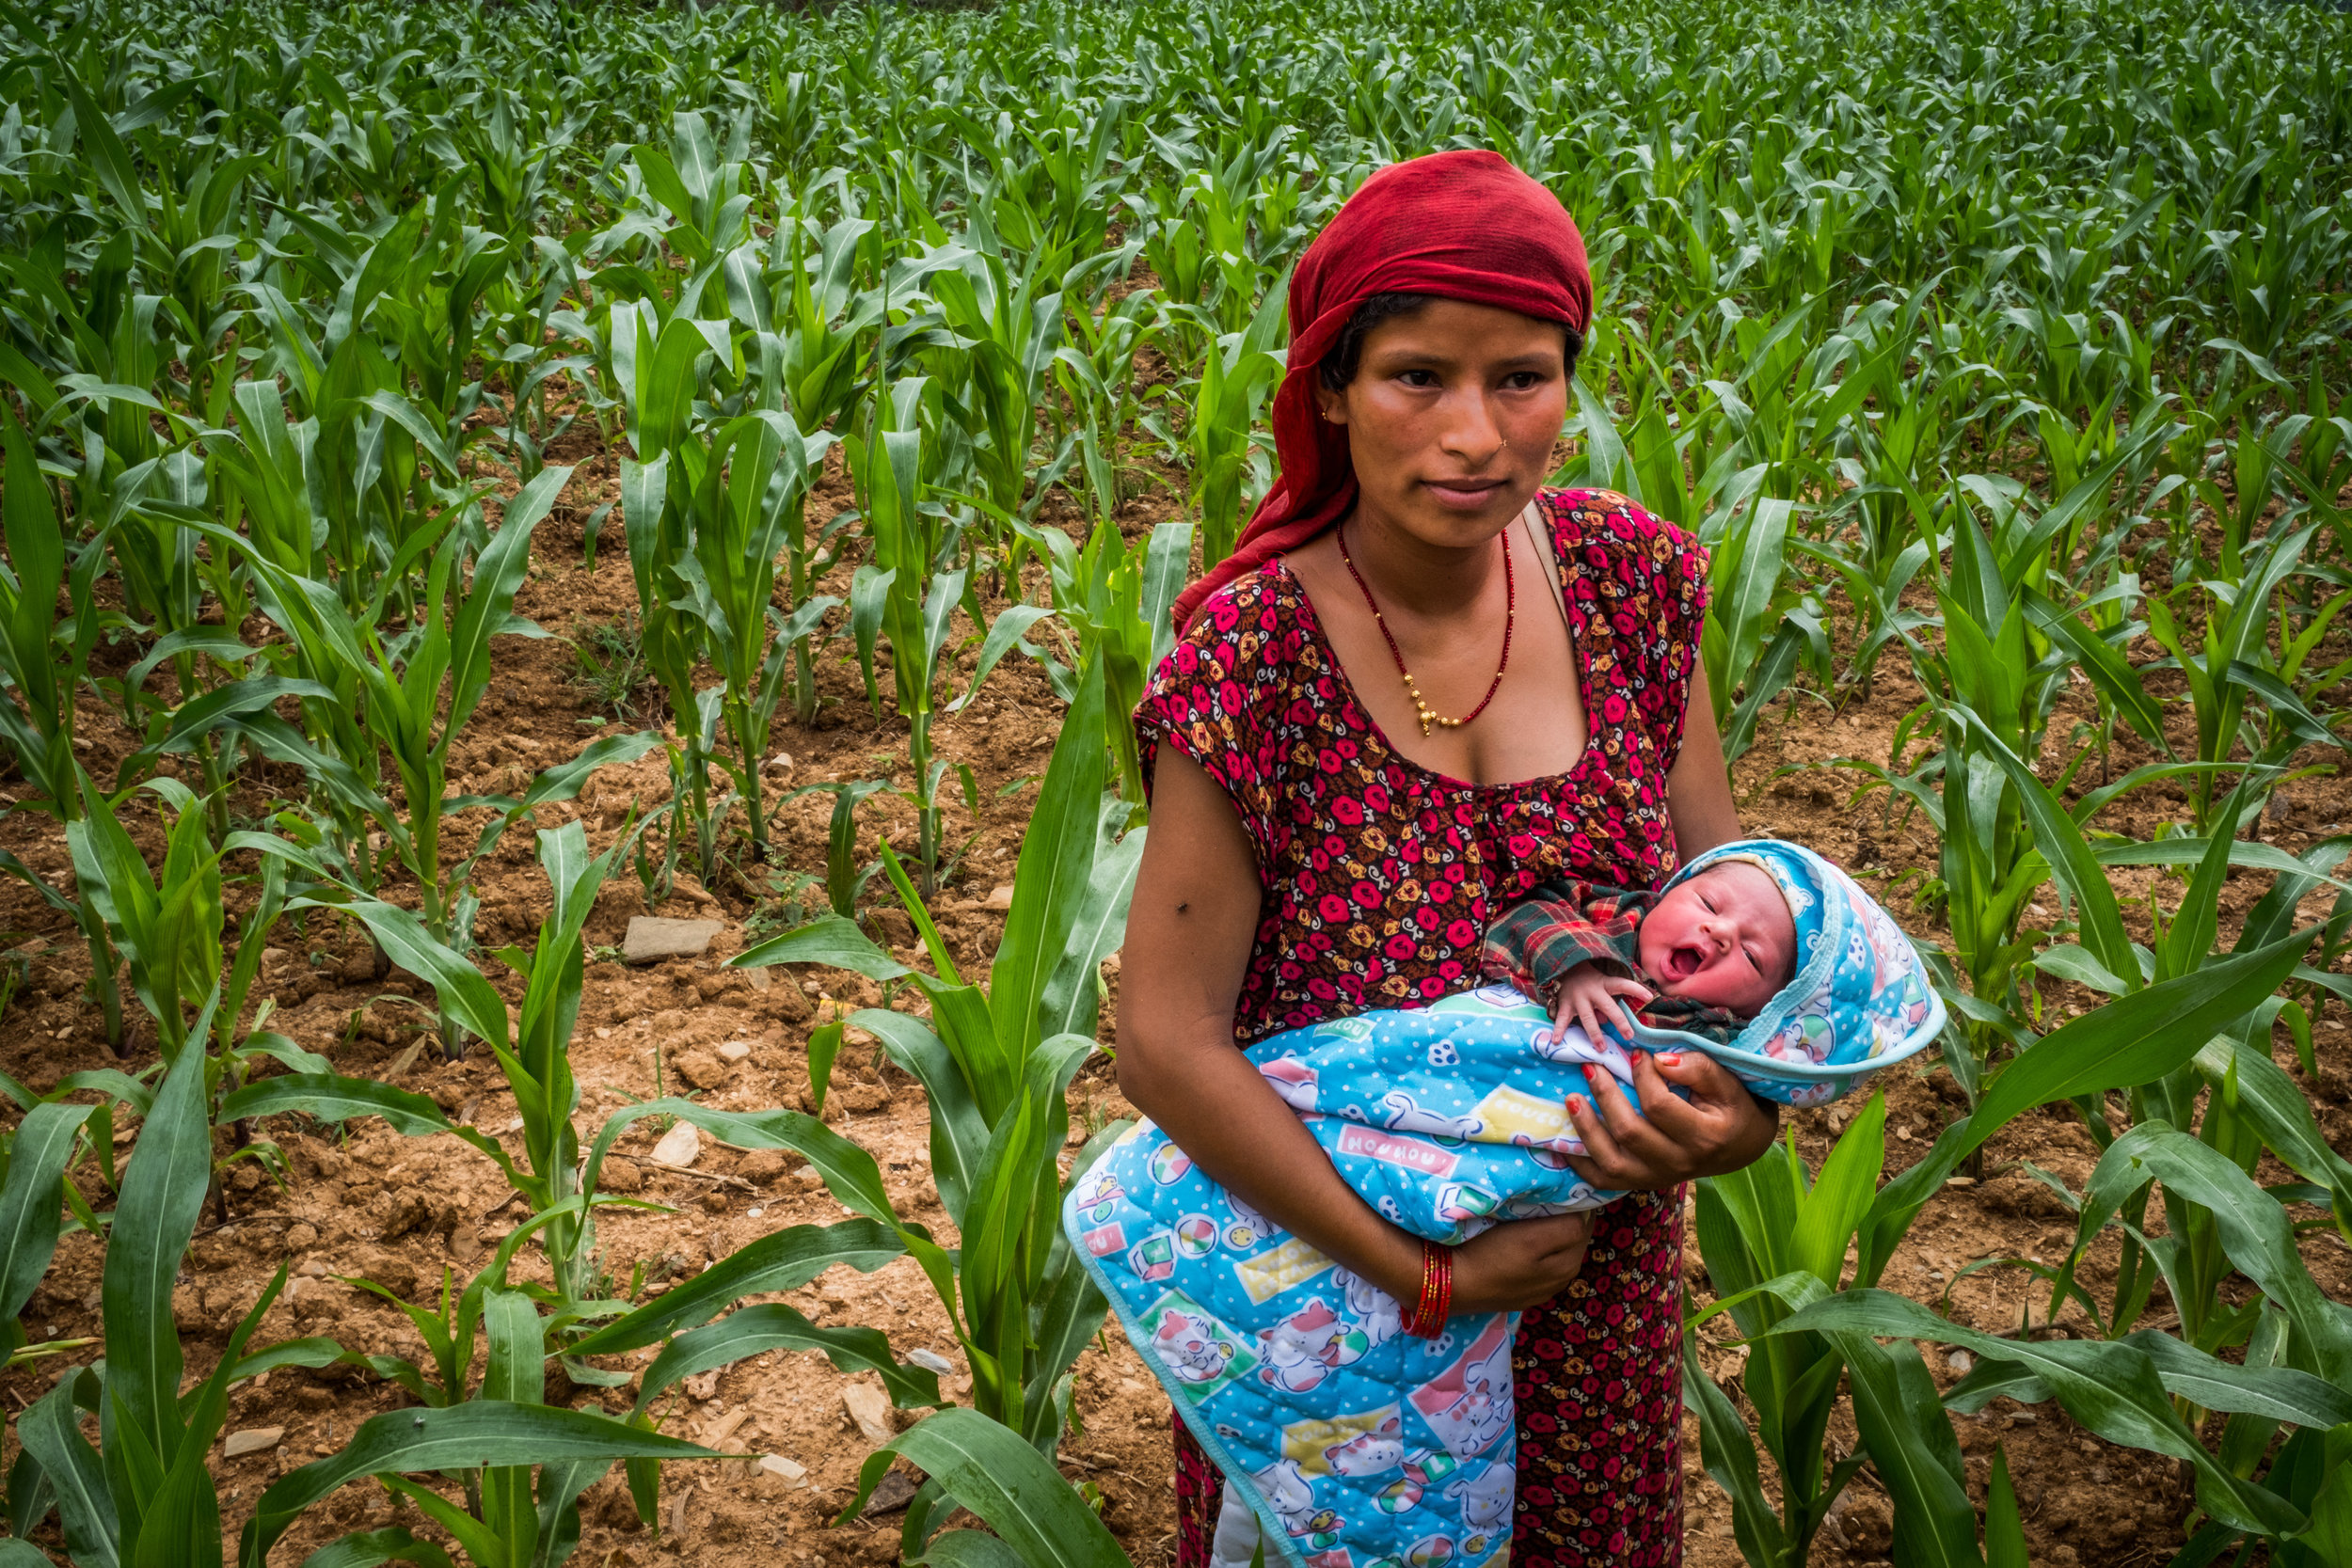 Indira Khatri, 23, with her second child. She lives is Thokarpa, Nepal an hour's walk from a small clinic and 4-5 hours drive on rough dirt roads from the nearest advanced medical facility.